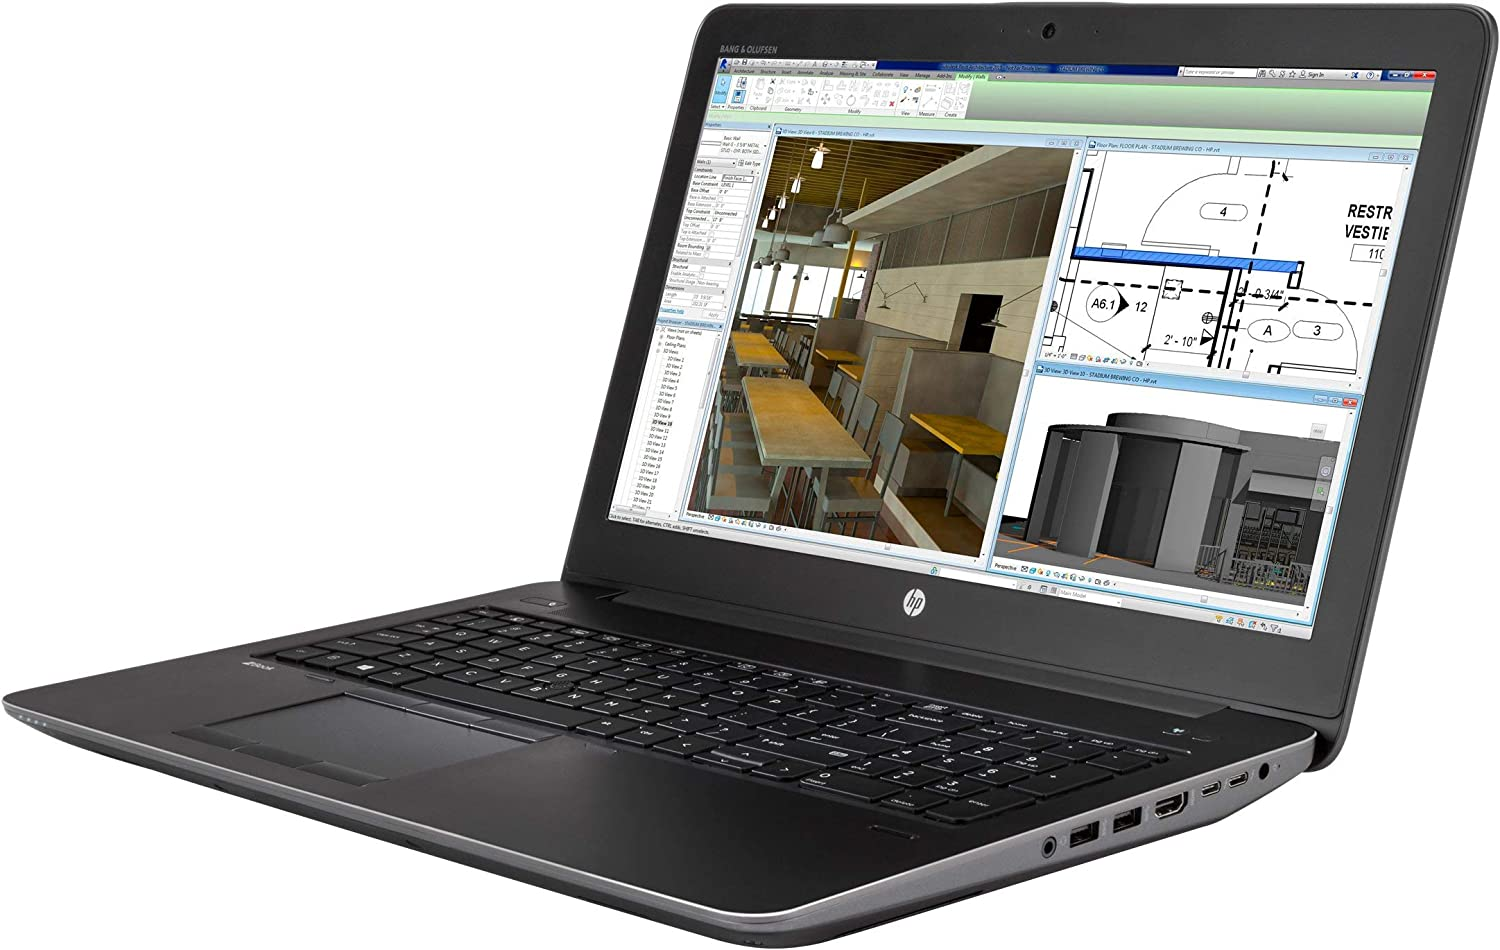 5. HP ZBook 15 G4 Mobile Workstation